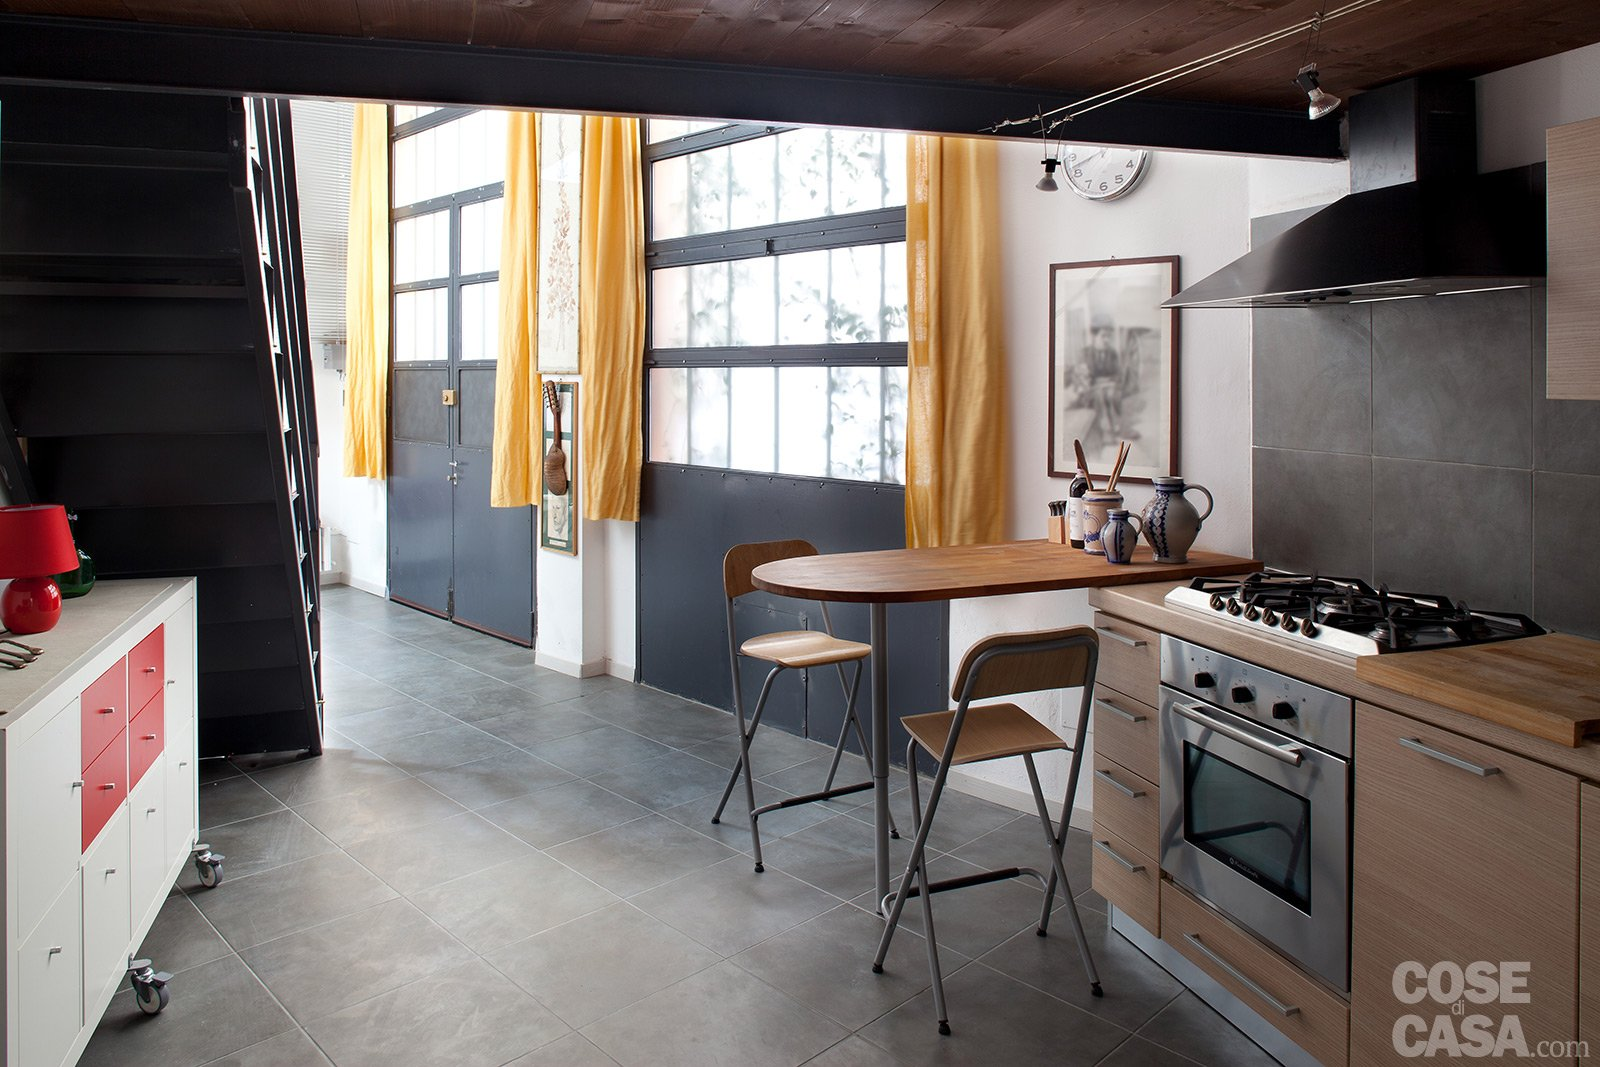 Isola Cucina Fai Da Te.Isola Cucina Fai Da Te Stunning Hey Look At This Wallpaper From